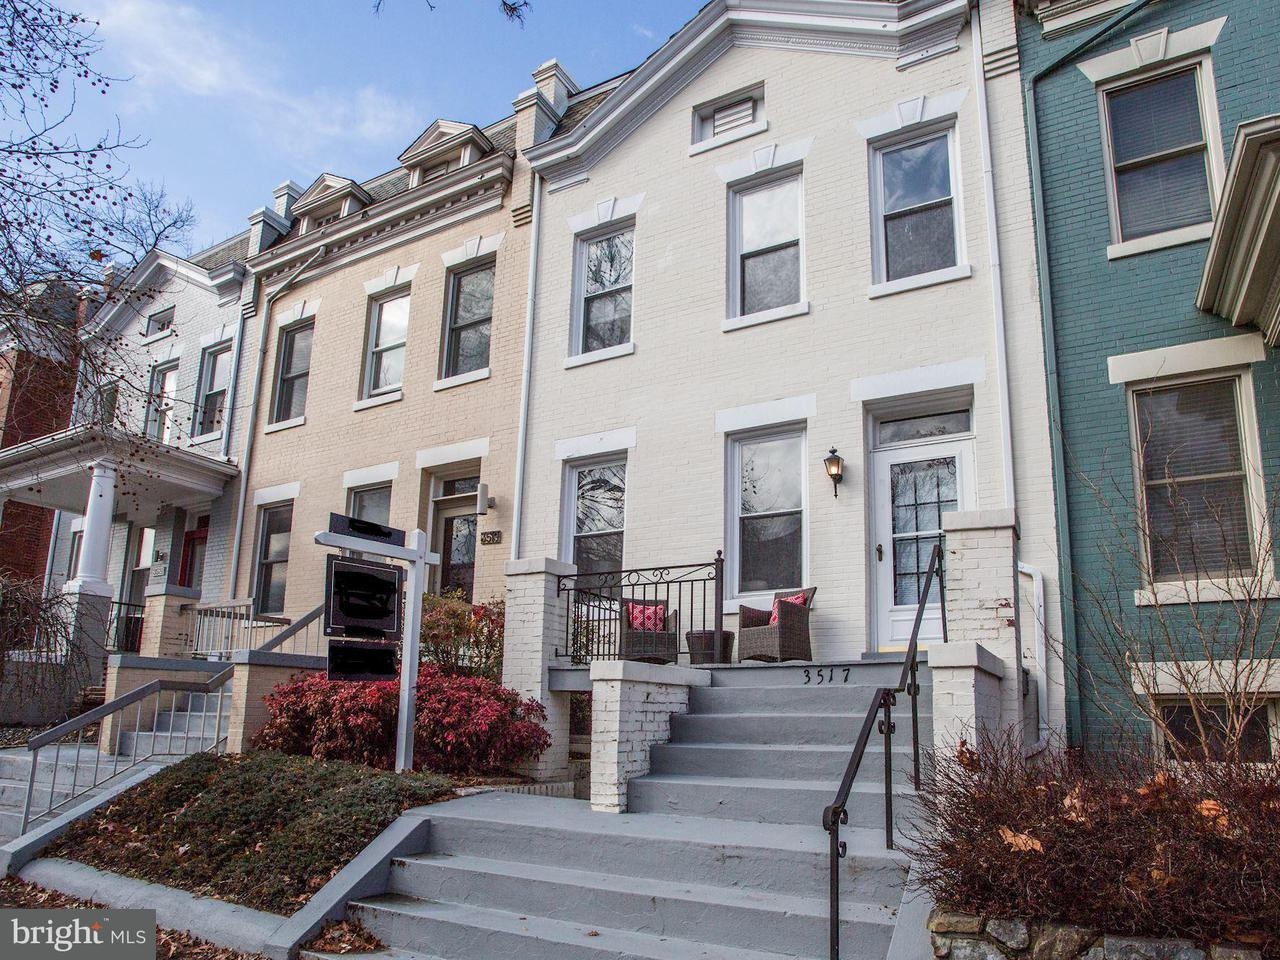 Townhouse for Sale at 3517 W Pl Nw 3517 W Pl Nw Washington, District Of Columbia 20007 United States